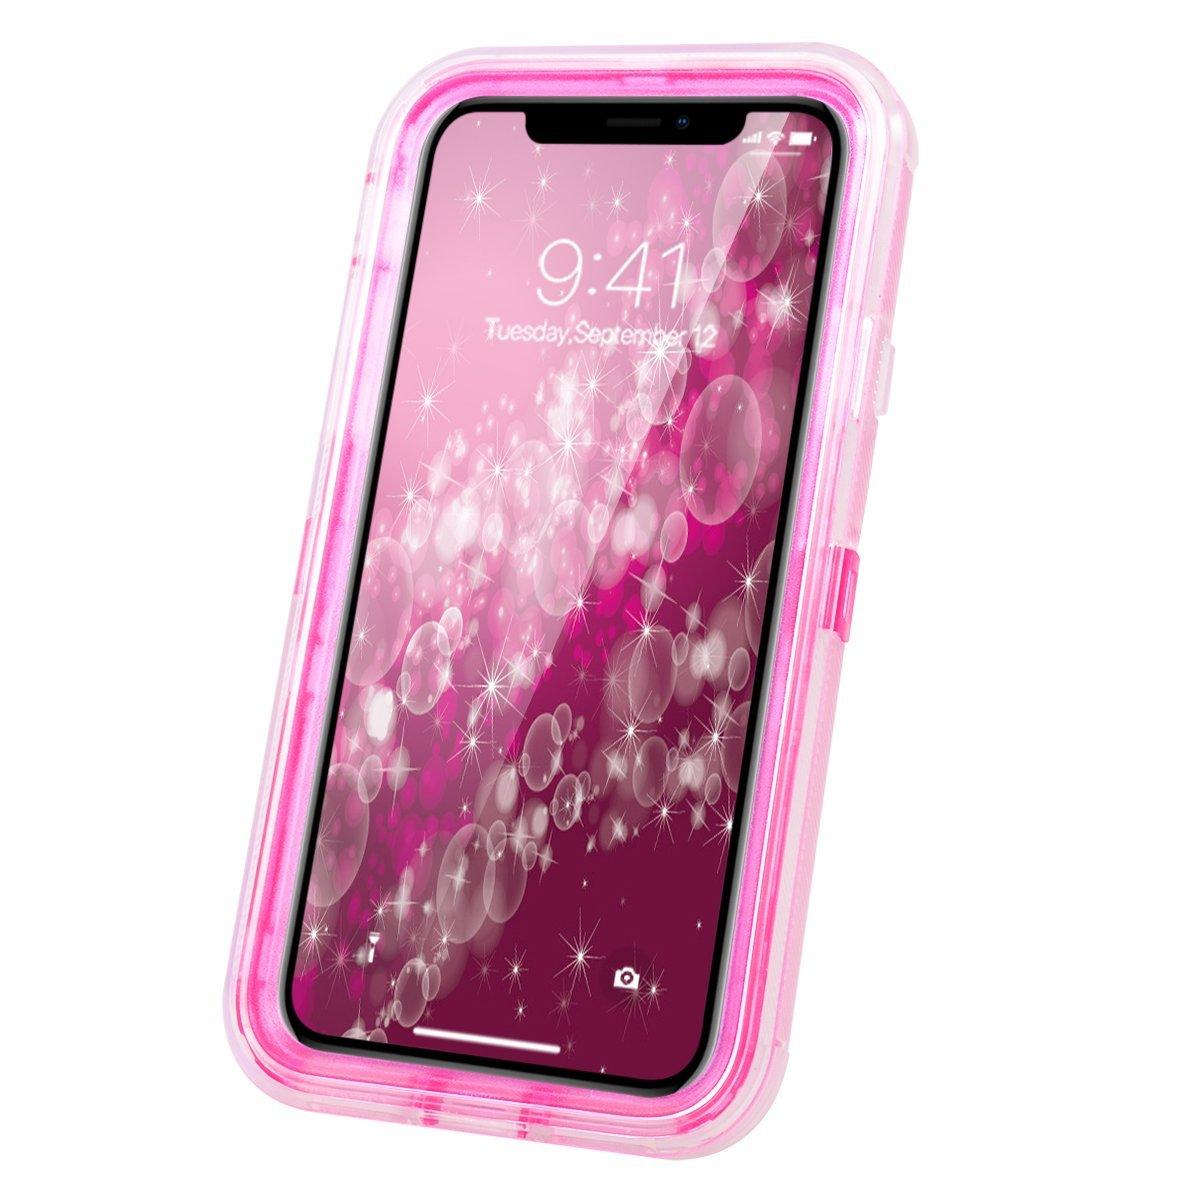 Apple iPhone XS MAX (6.5inch) Tough Defender Sparkling Flowing Liquid Glitter Heart Case by Modes